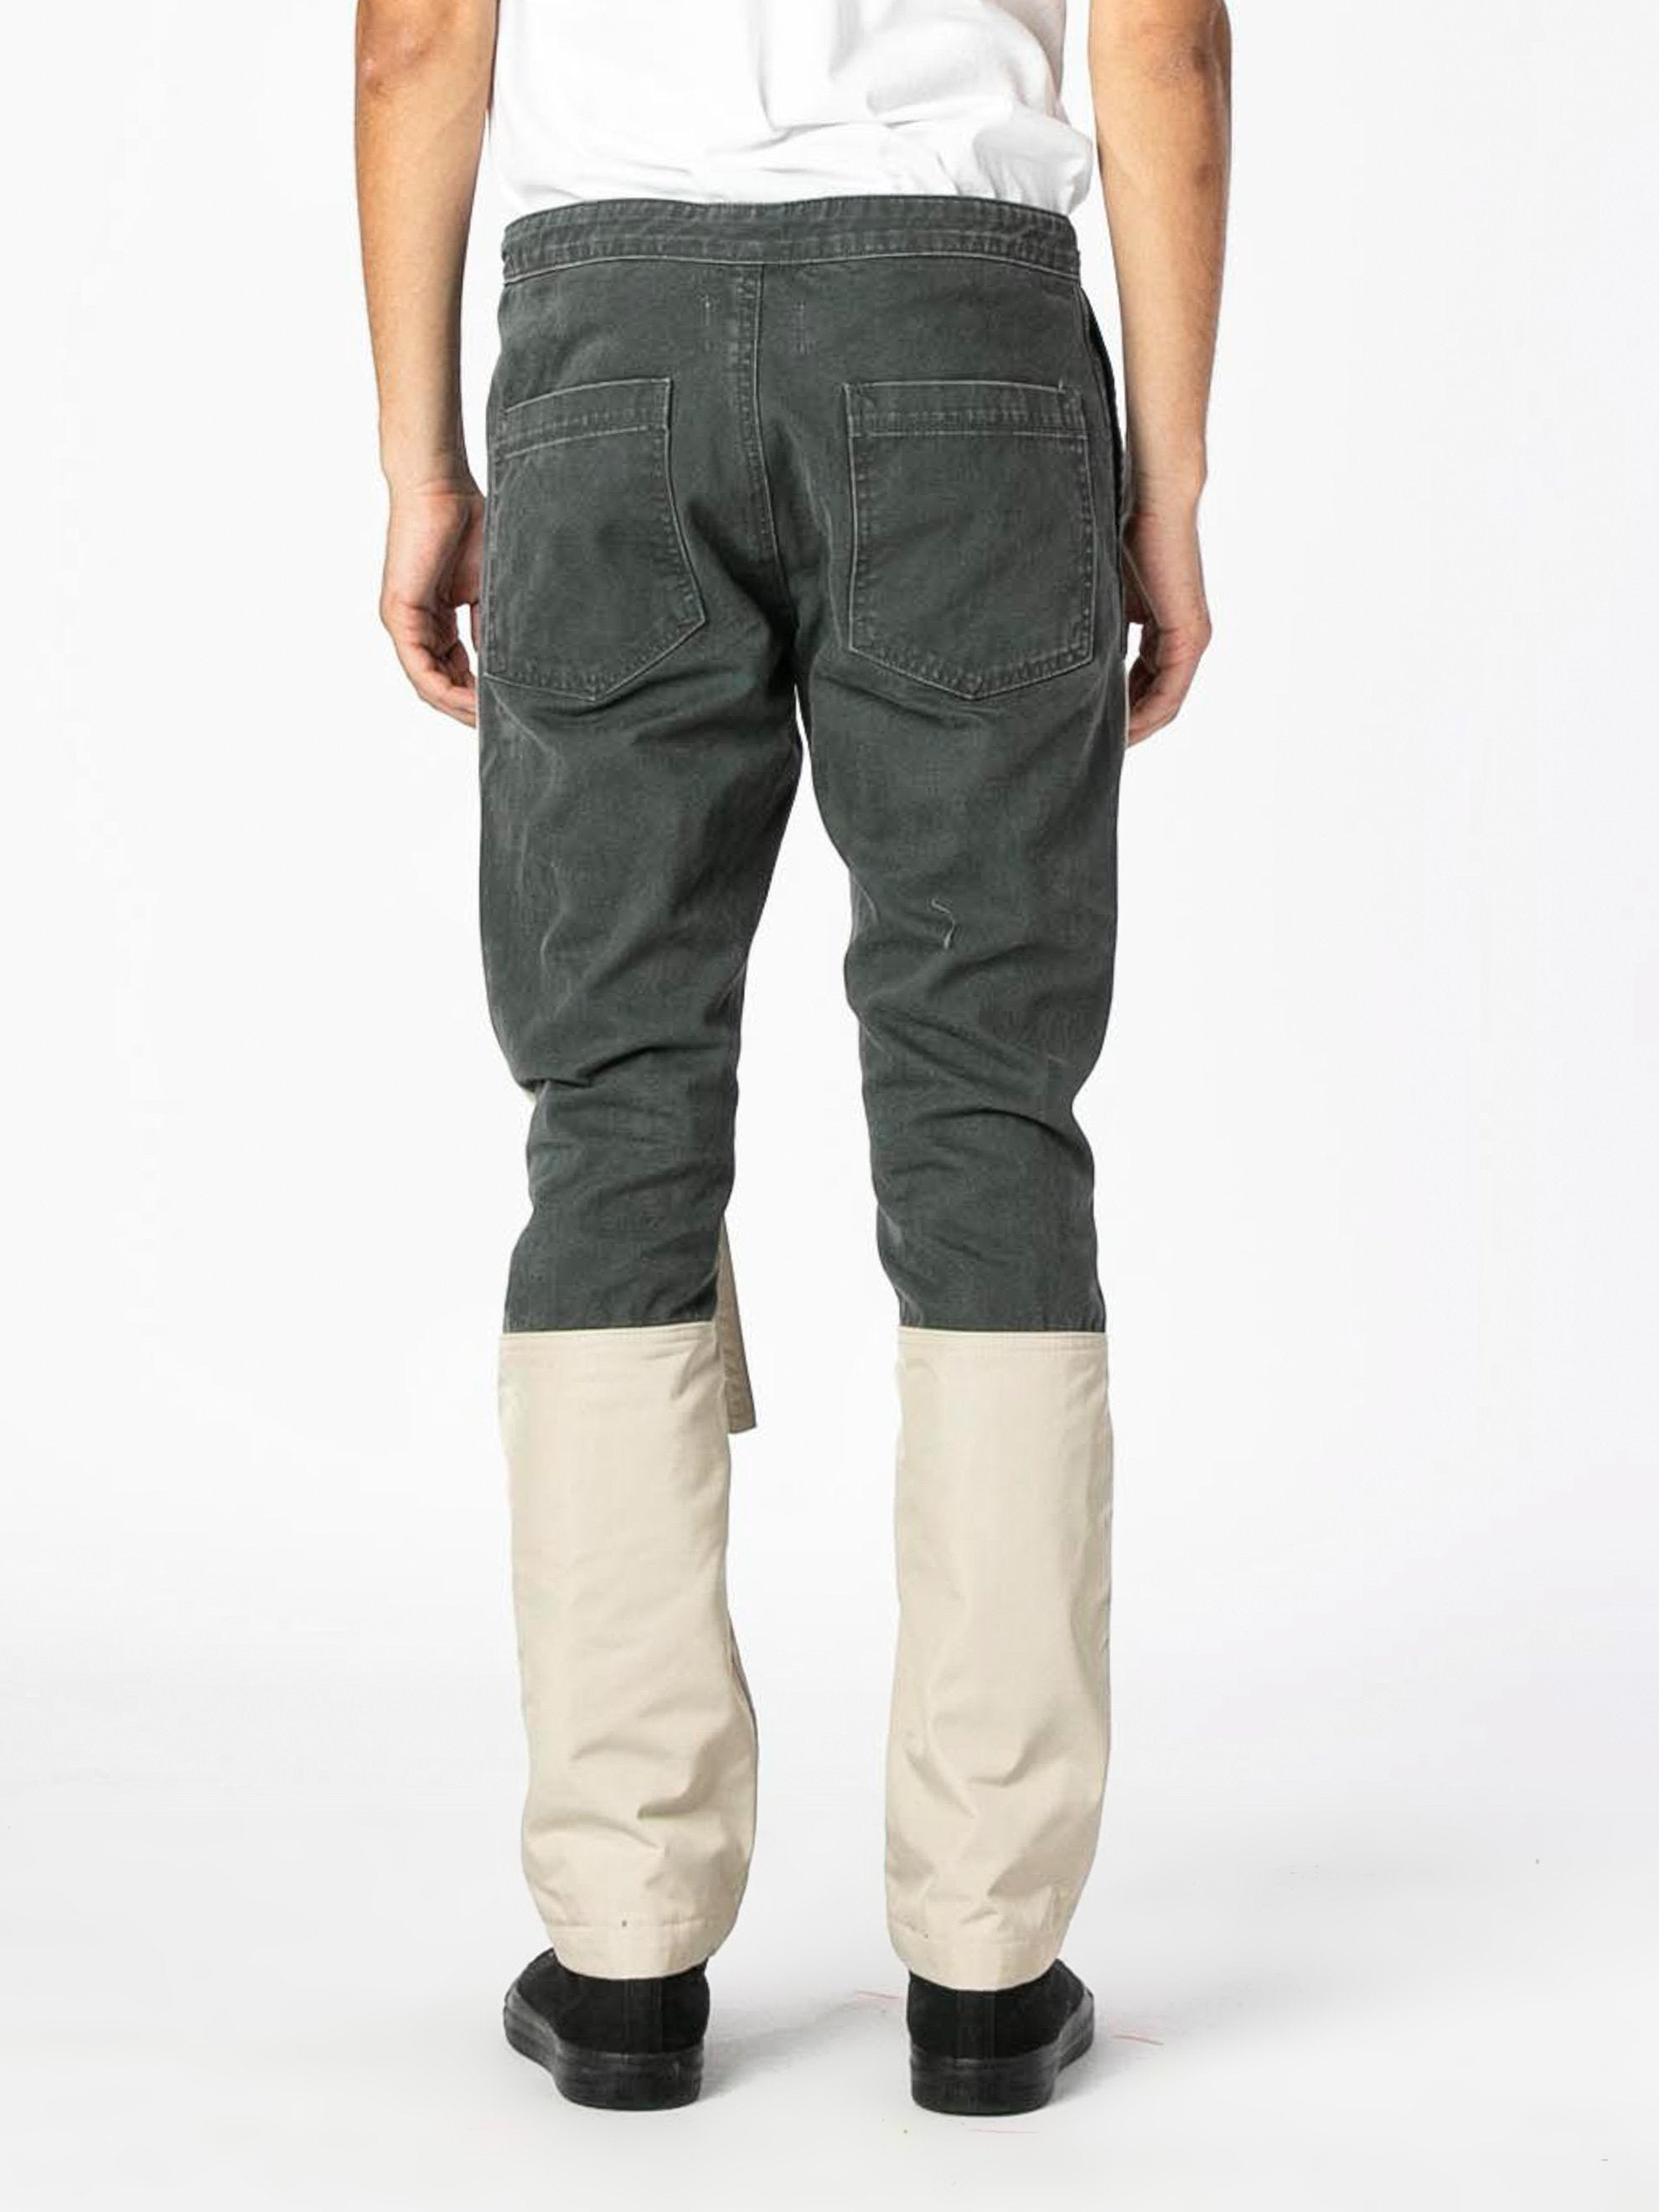 Seaweed / Bone Nylon Canvas Double Front Work Pant 5